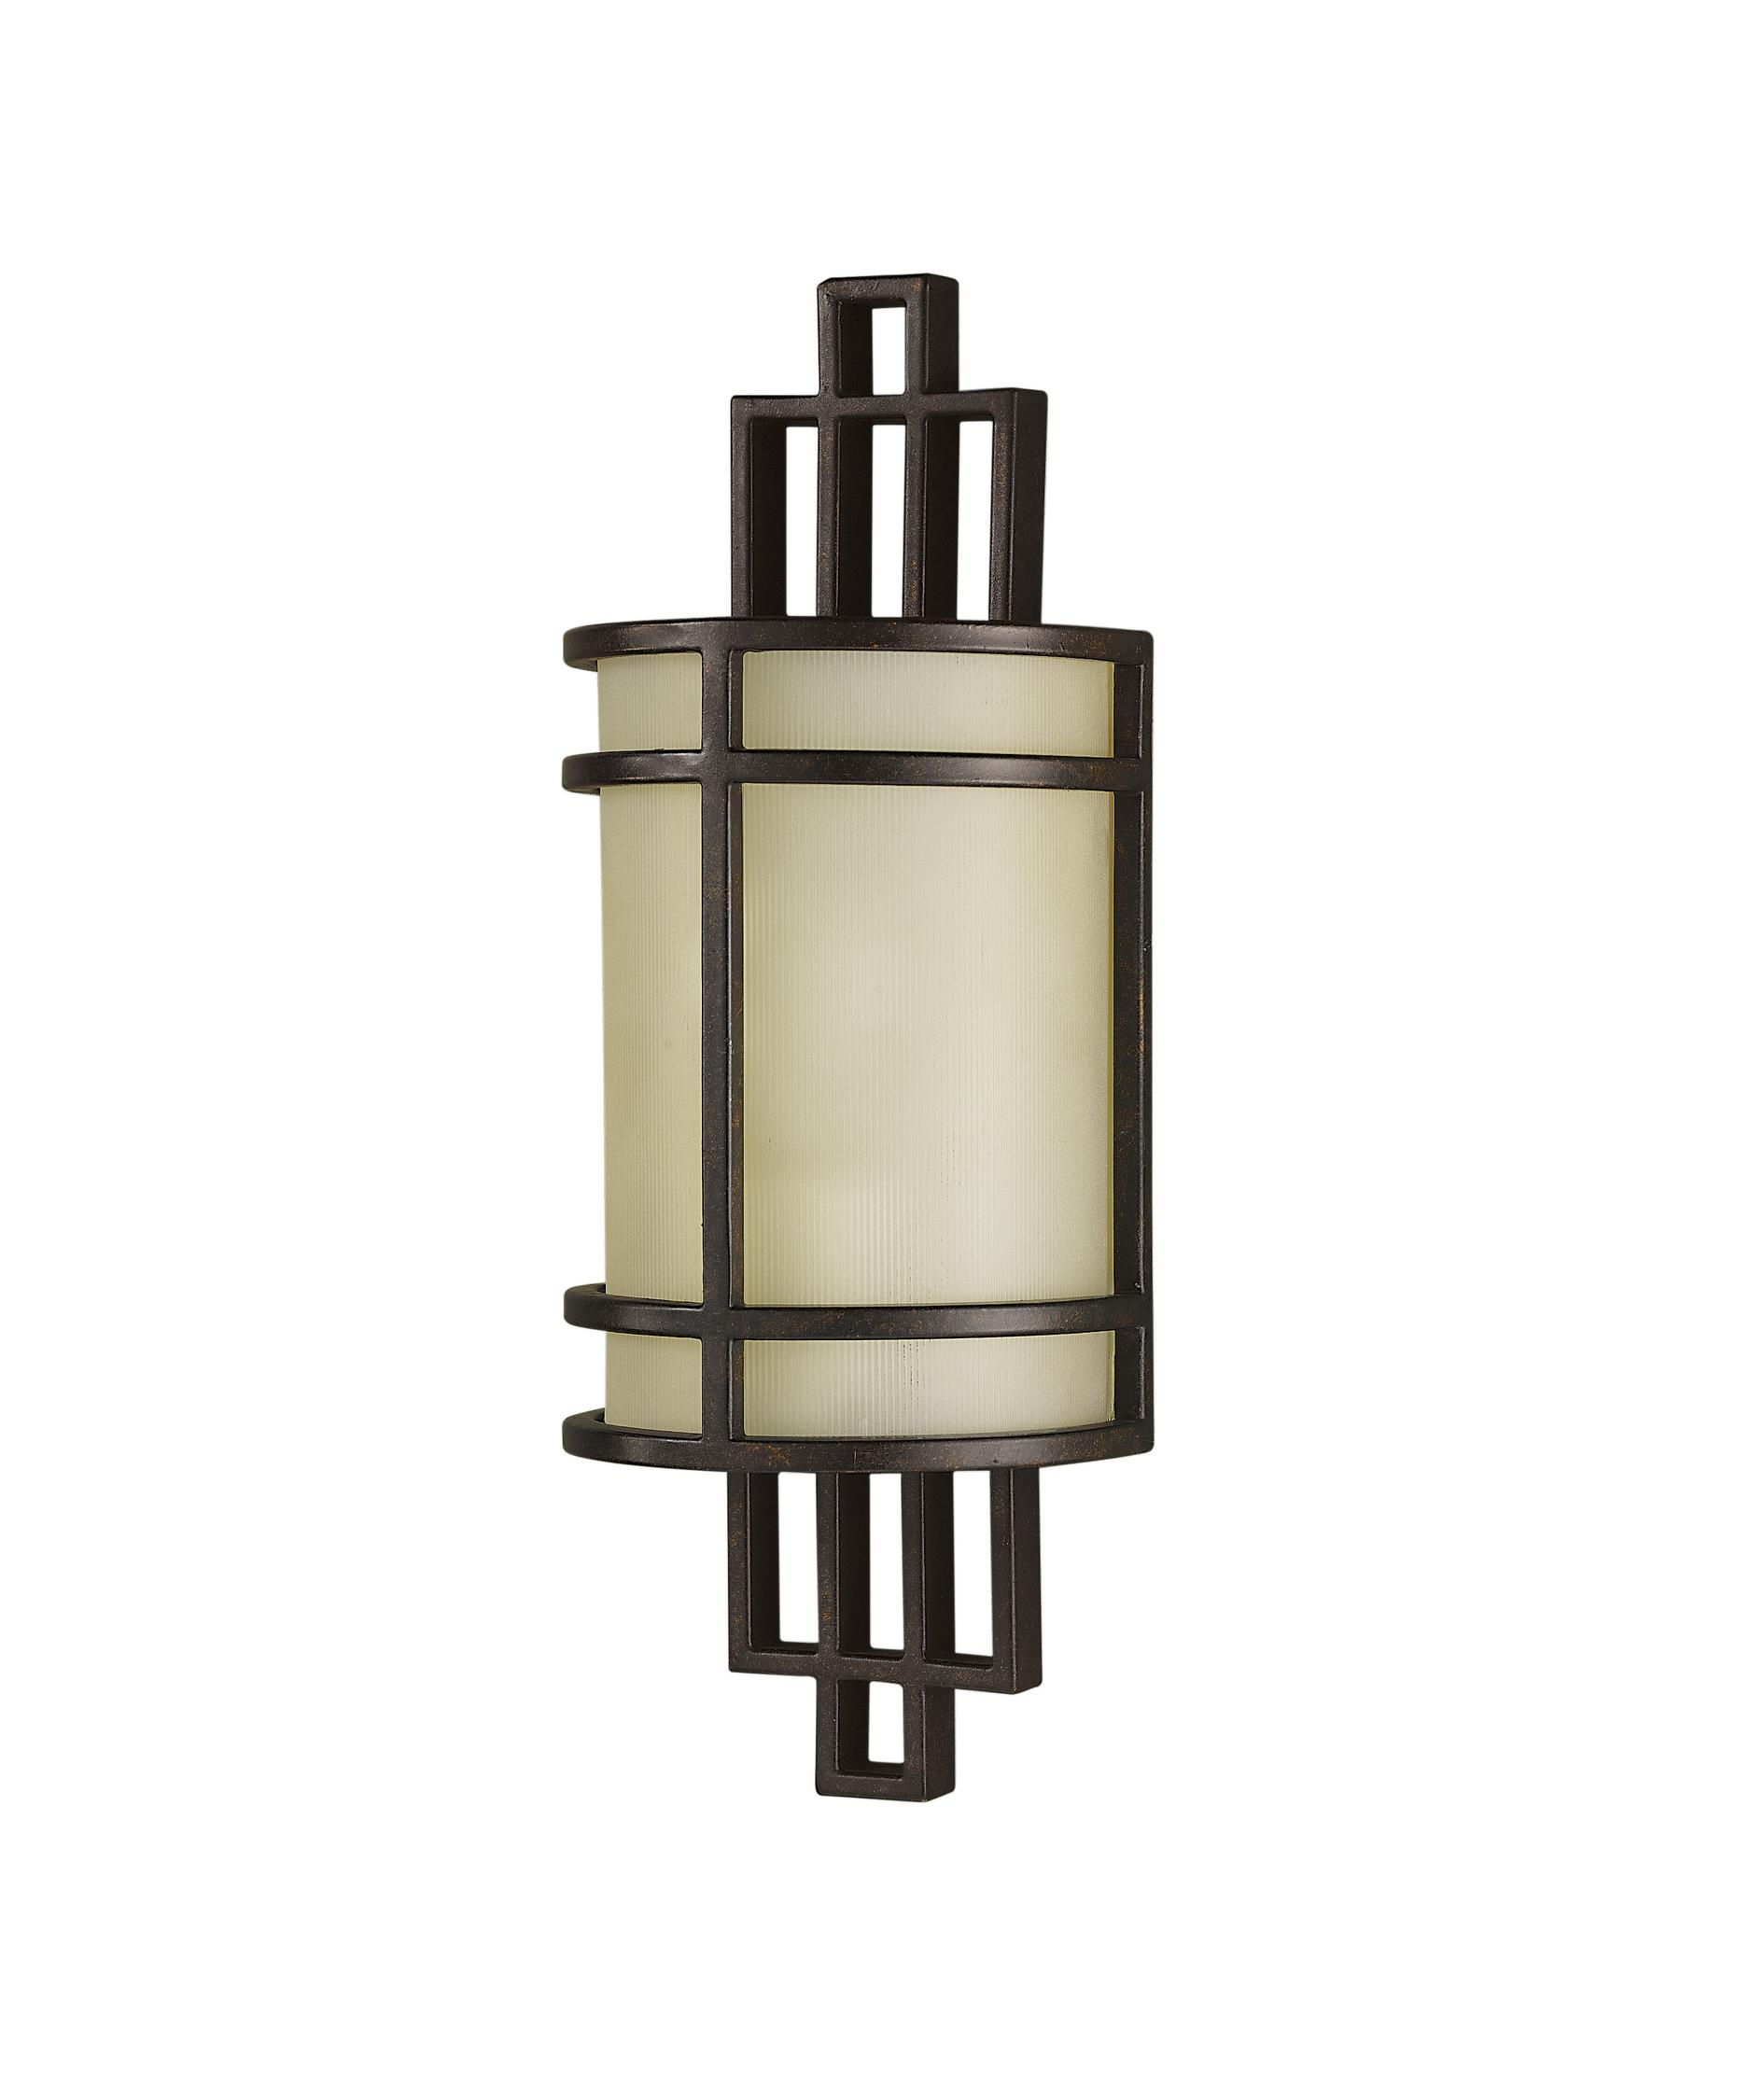 Murray Feiss Fusion Collection: Murray Feiss WB1283 Fusion 6 Inch Wall Sconce